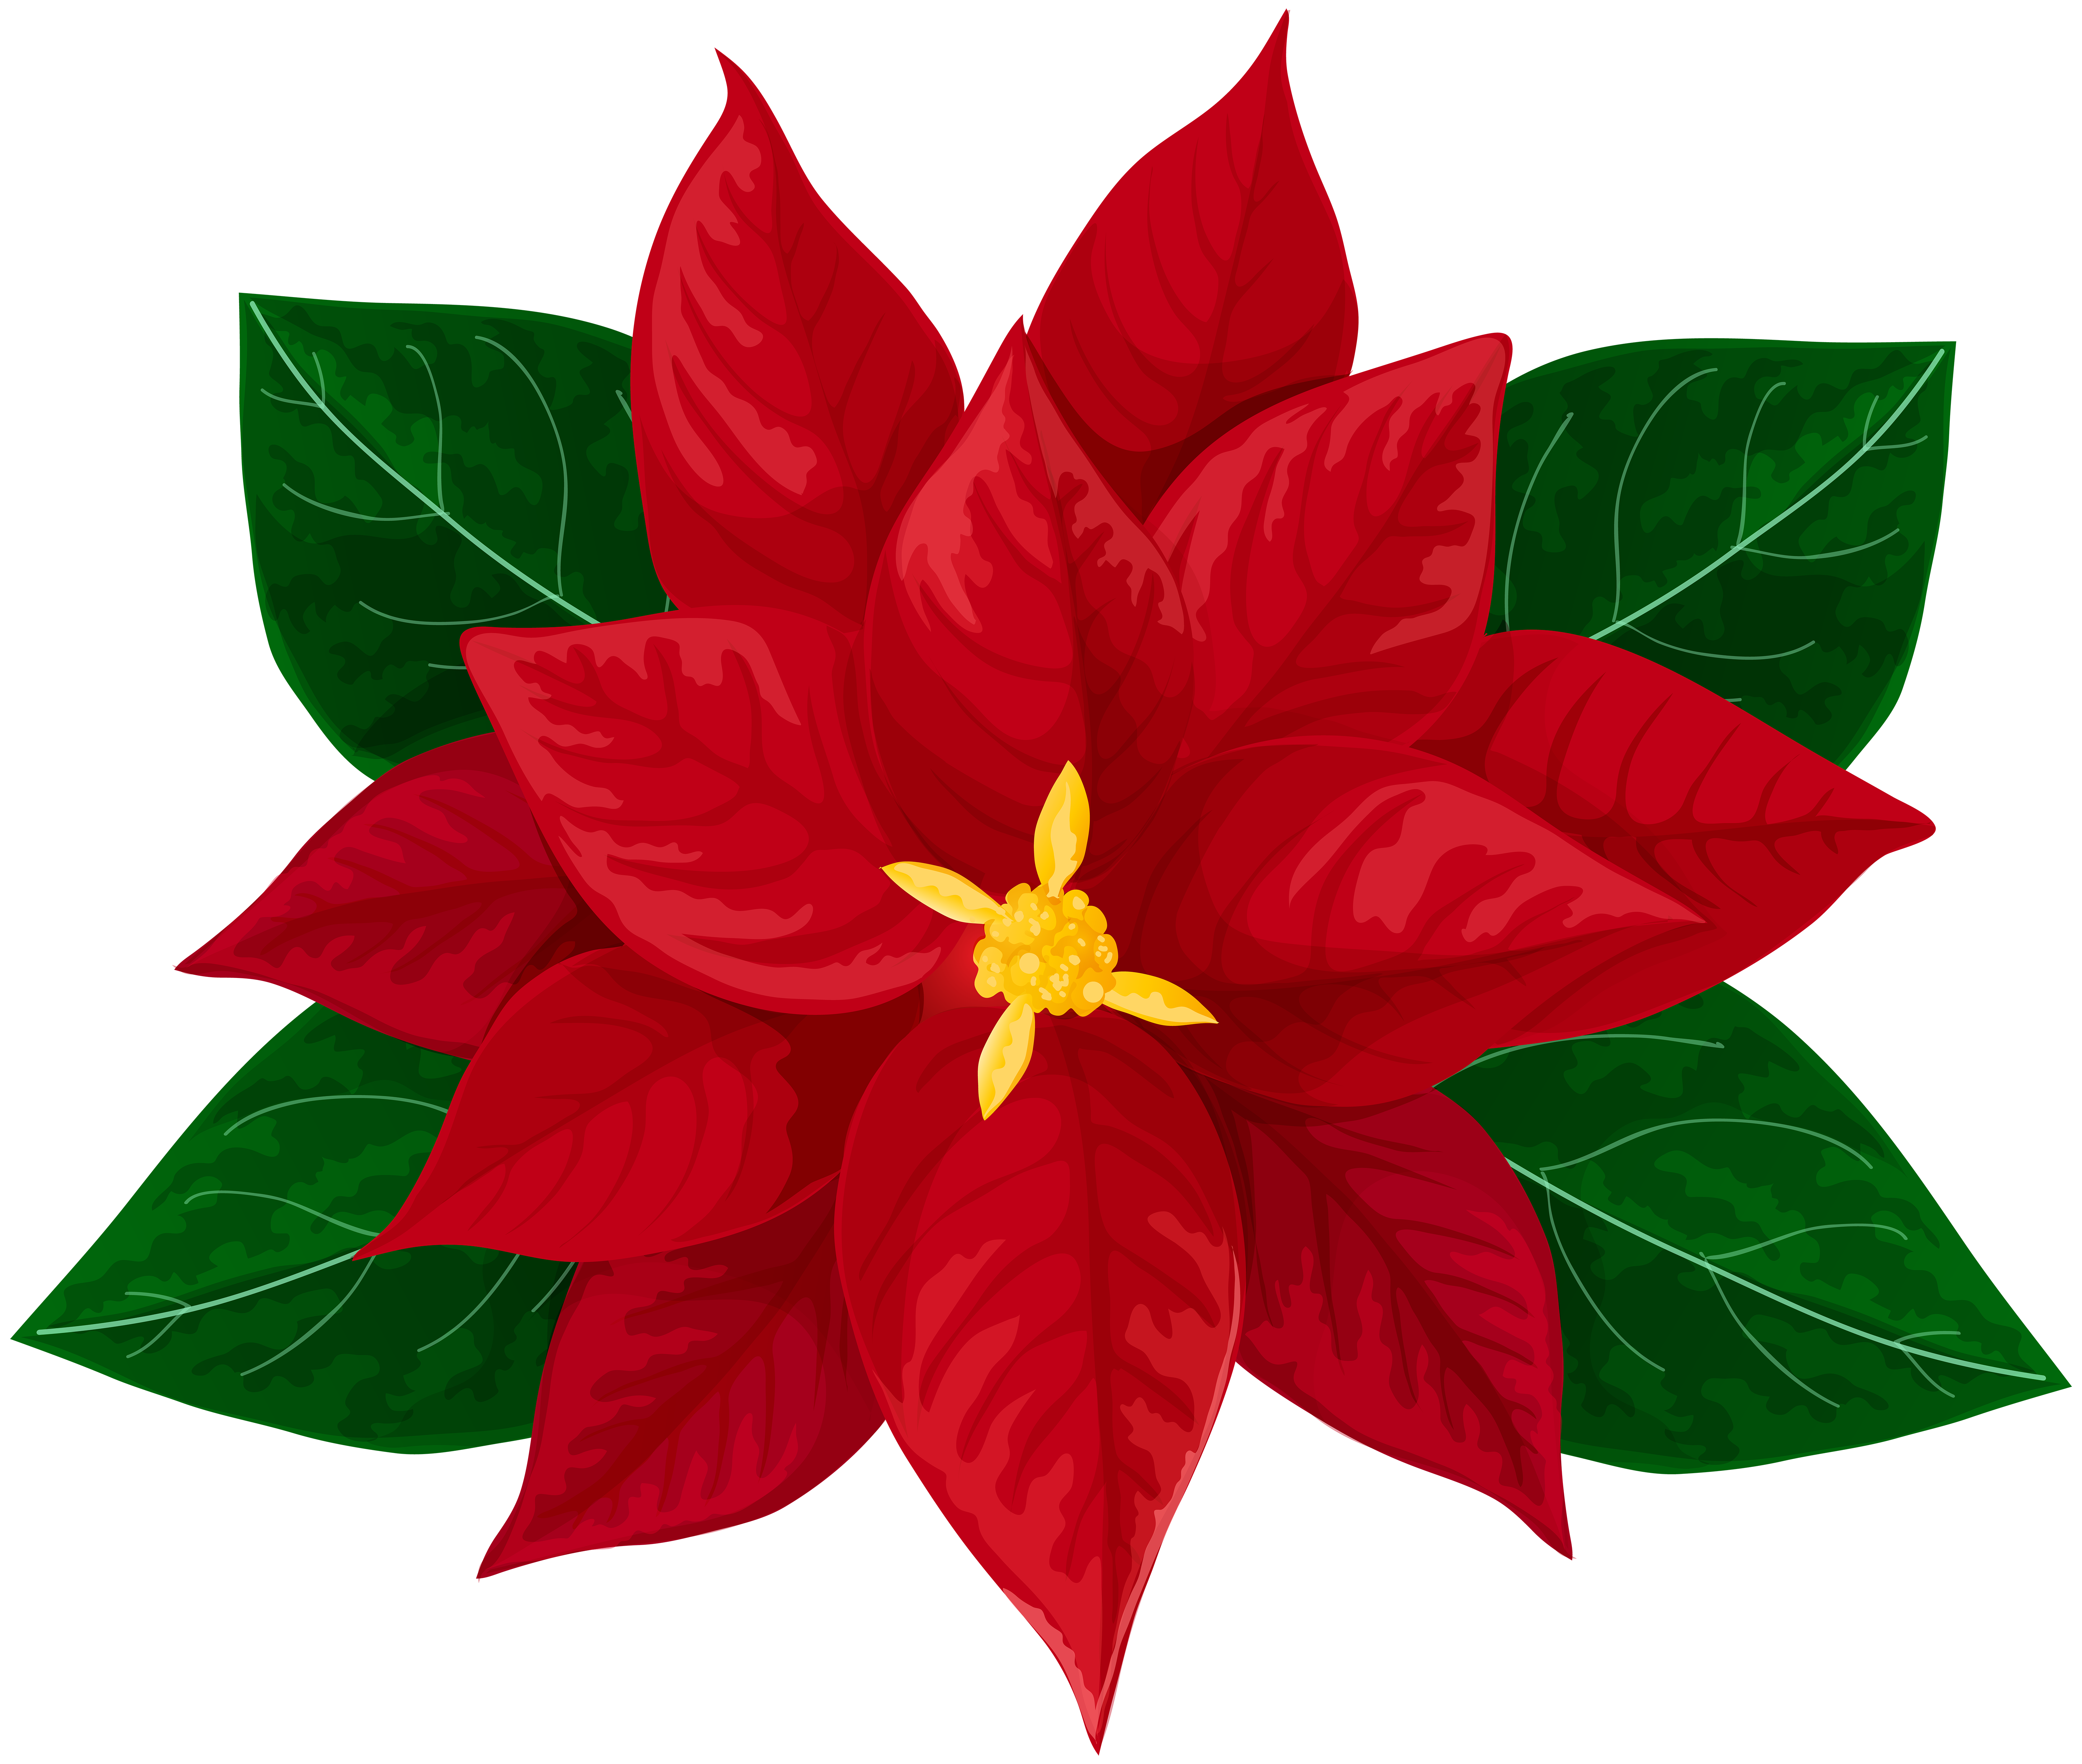 svg royalty free library Transparent clip art image. Poinsettia svg.